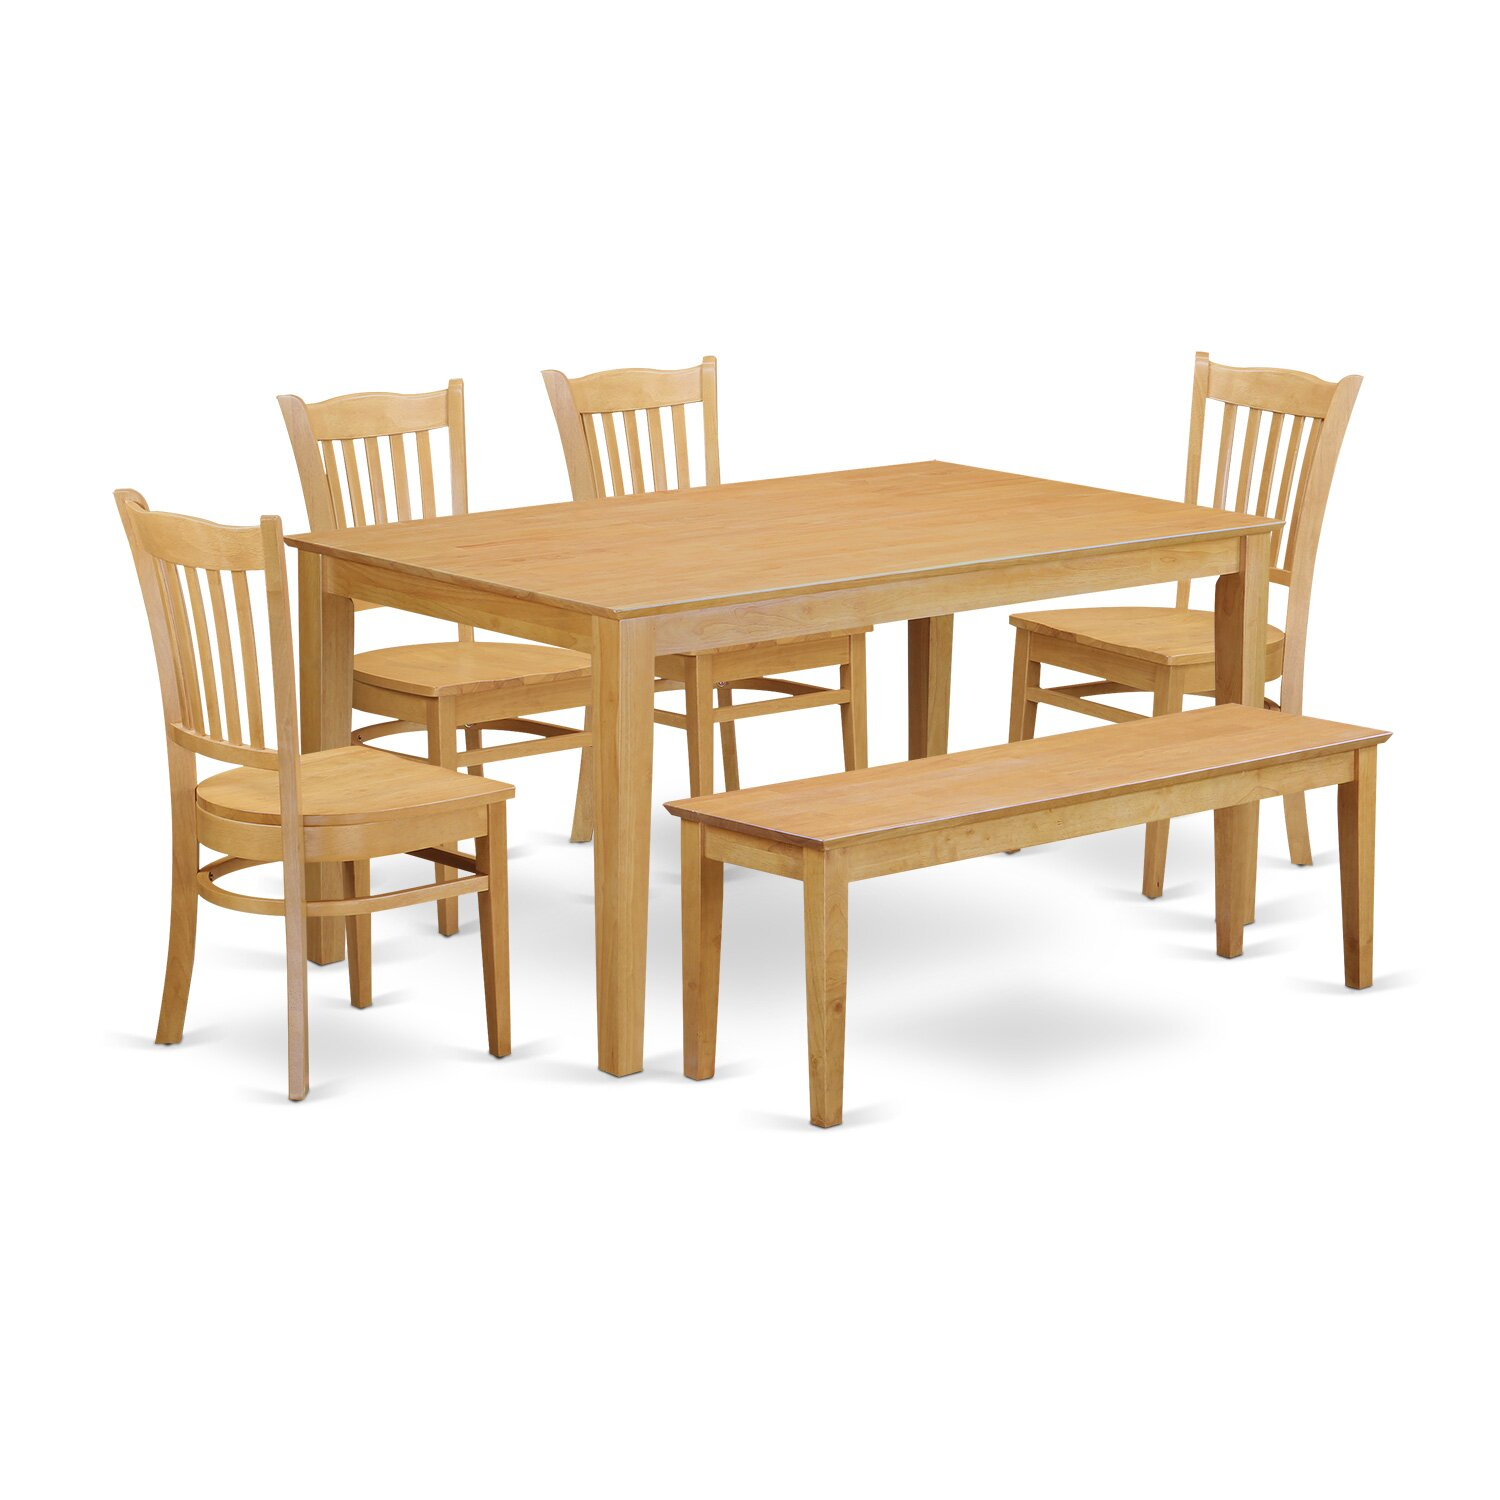 Bench Set Dining Table And 4 Kitchen Chairs And Bench CAGR6 OAK W.jpg. Full resolution  img, nominally Width 1500 Height 1500 pixels, img with #421E09.